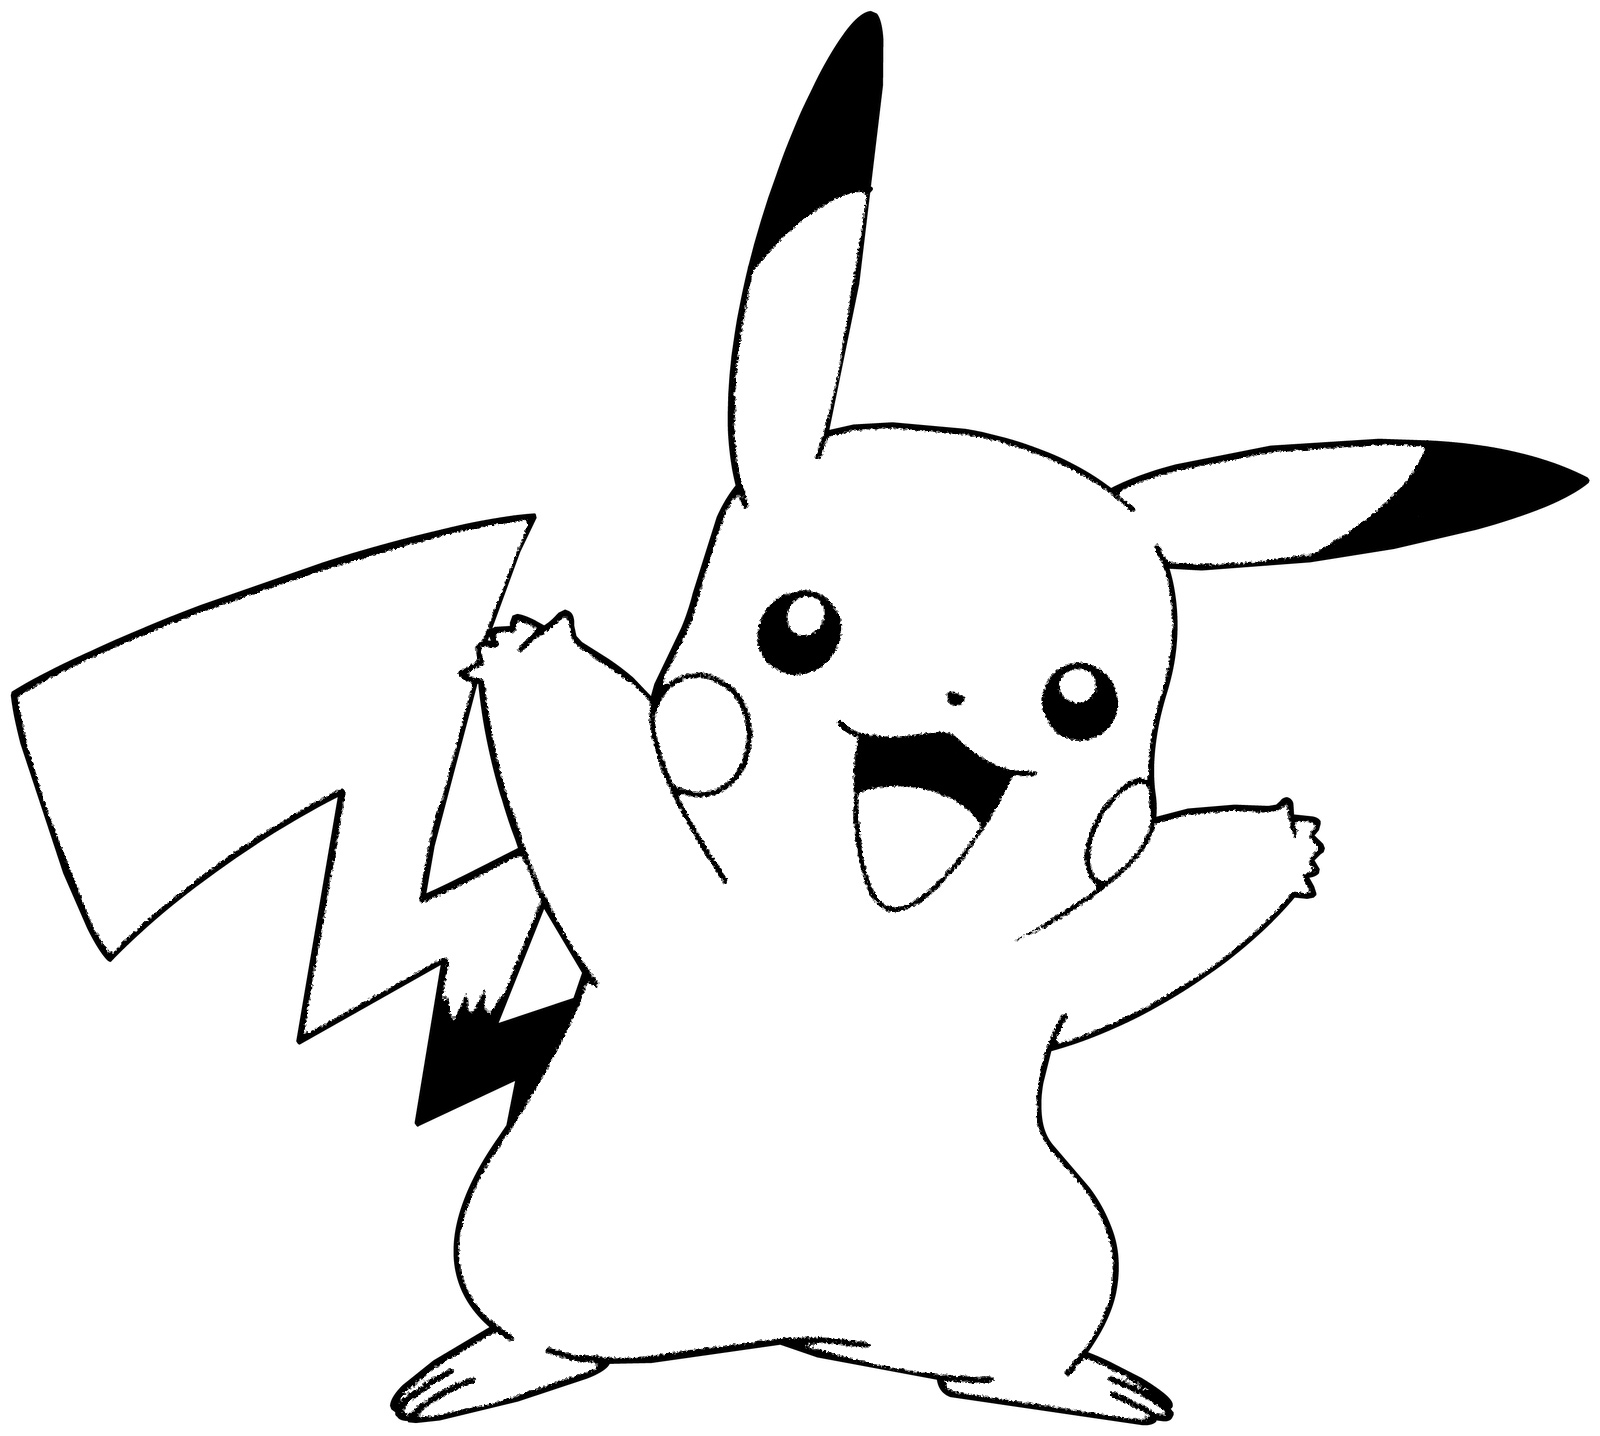 pikachu images for coloring 10 free pikachu coloring pages for kids images for coloring pikachu